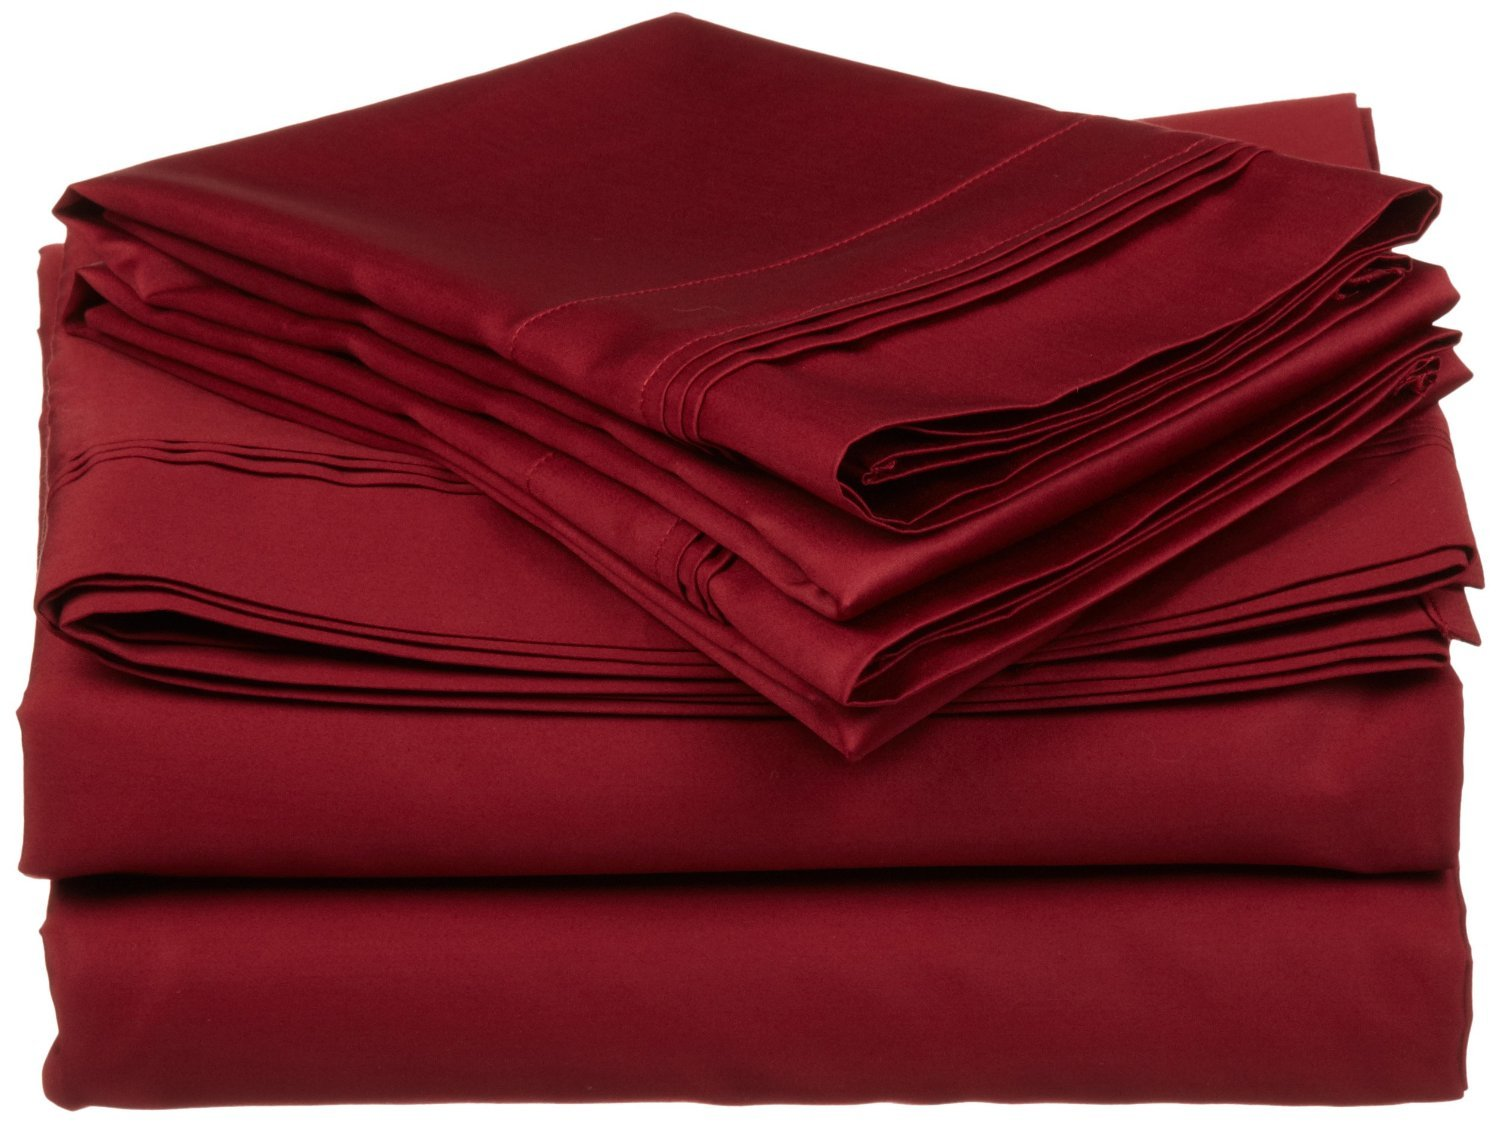 Flat Sheet 3 Pack ( 1 PC Flat & 2 Pillows ) Soft Italian Quality 400 TC Olympic Queen Size With Limited 20 Solid Color's ( Burgundy ) By Galaxy's Linen